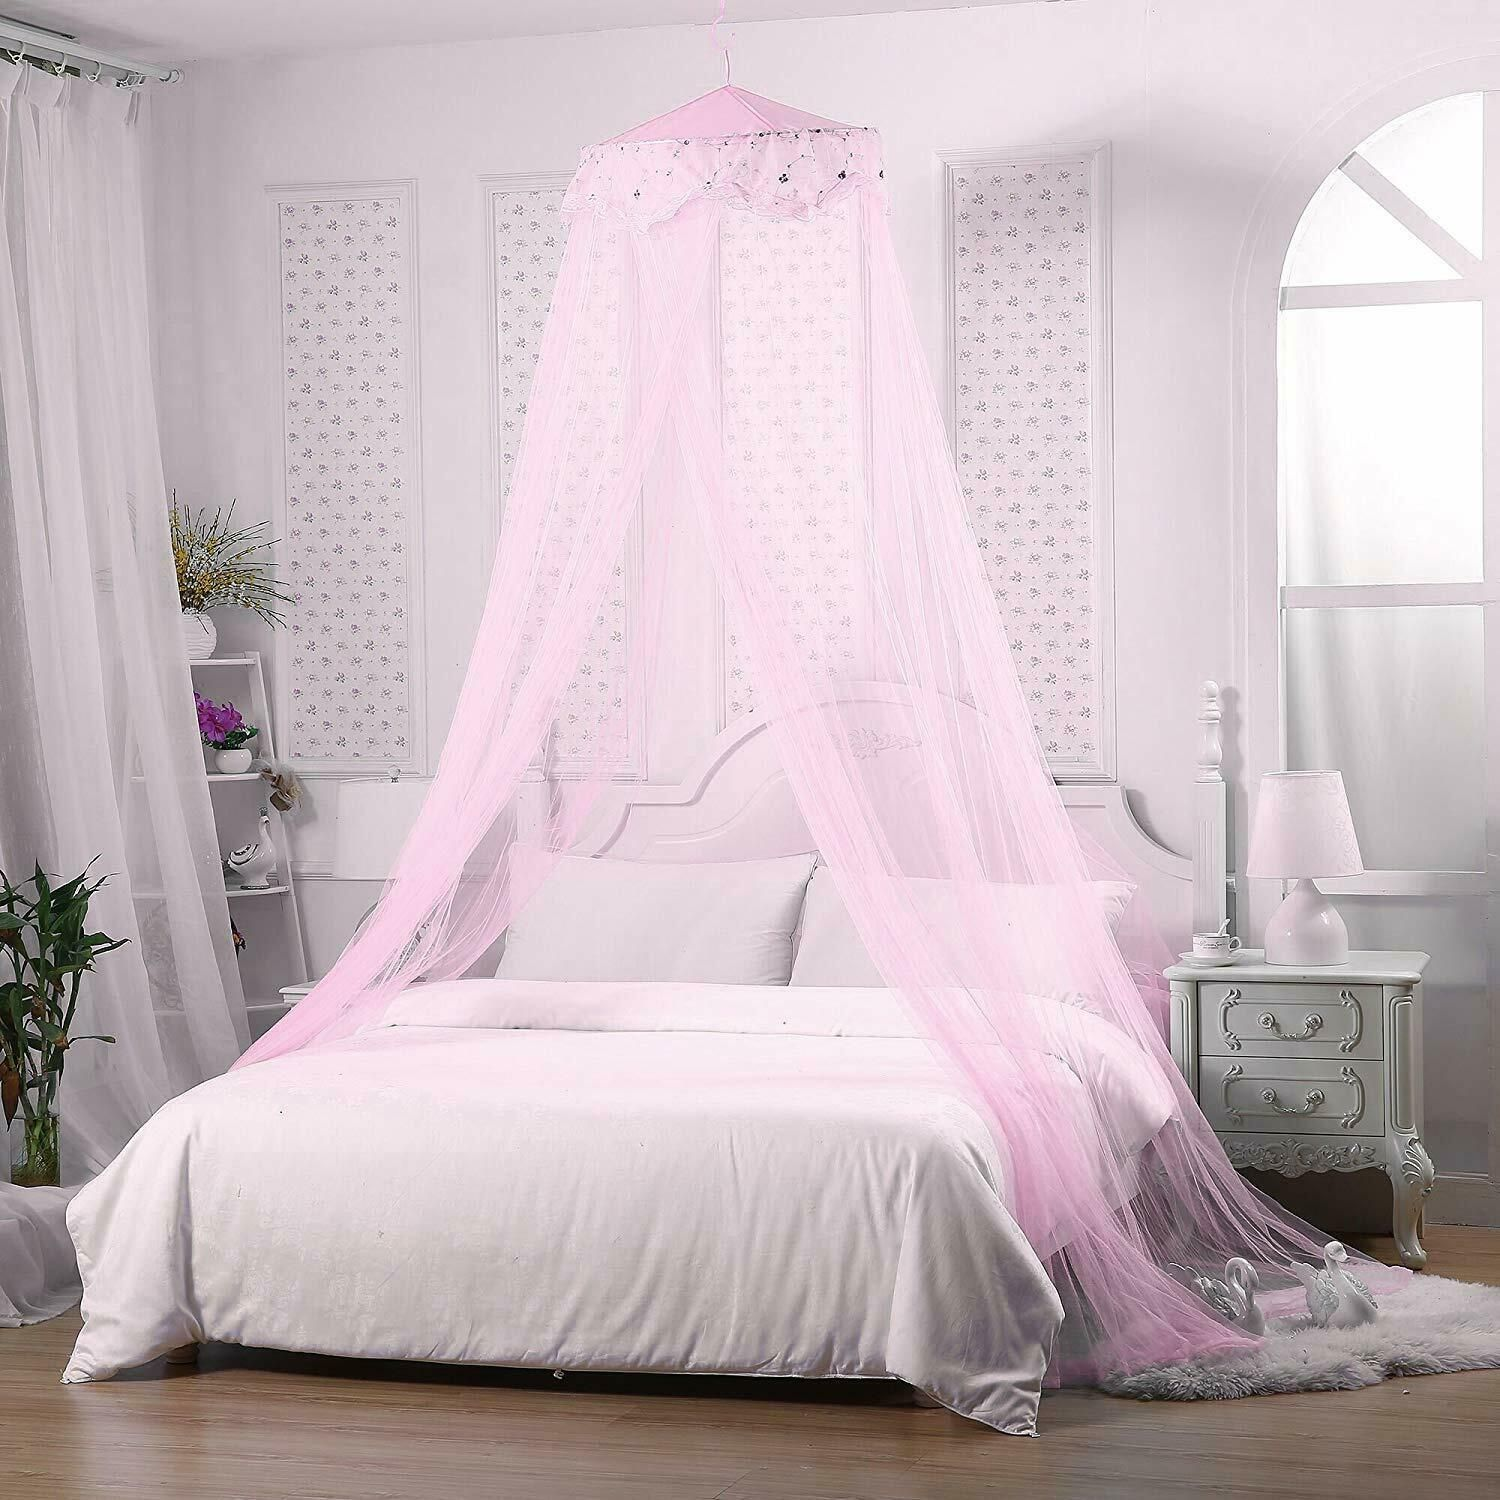 Jeteven Girl Bed Canopy Lace Mosquito Net For Girls Bed Princess Play Tent Read Bed Tents Ideas Of Bed Tents Girls Bed Canopy Bed Tent Princess Canopy Bed